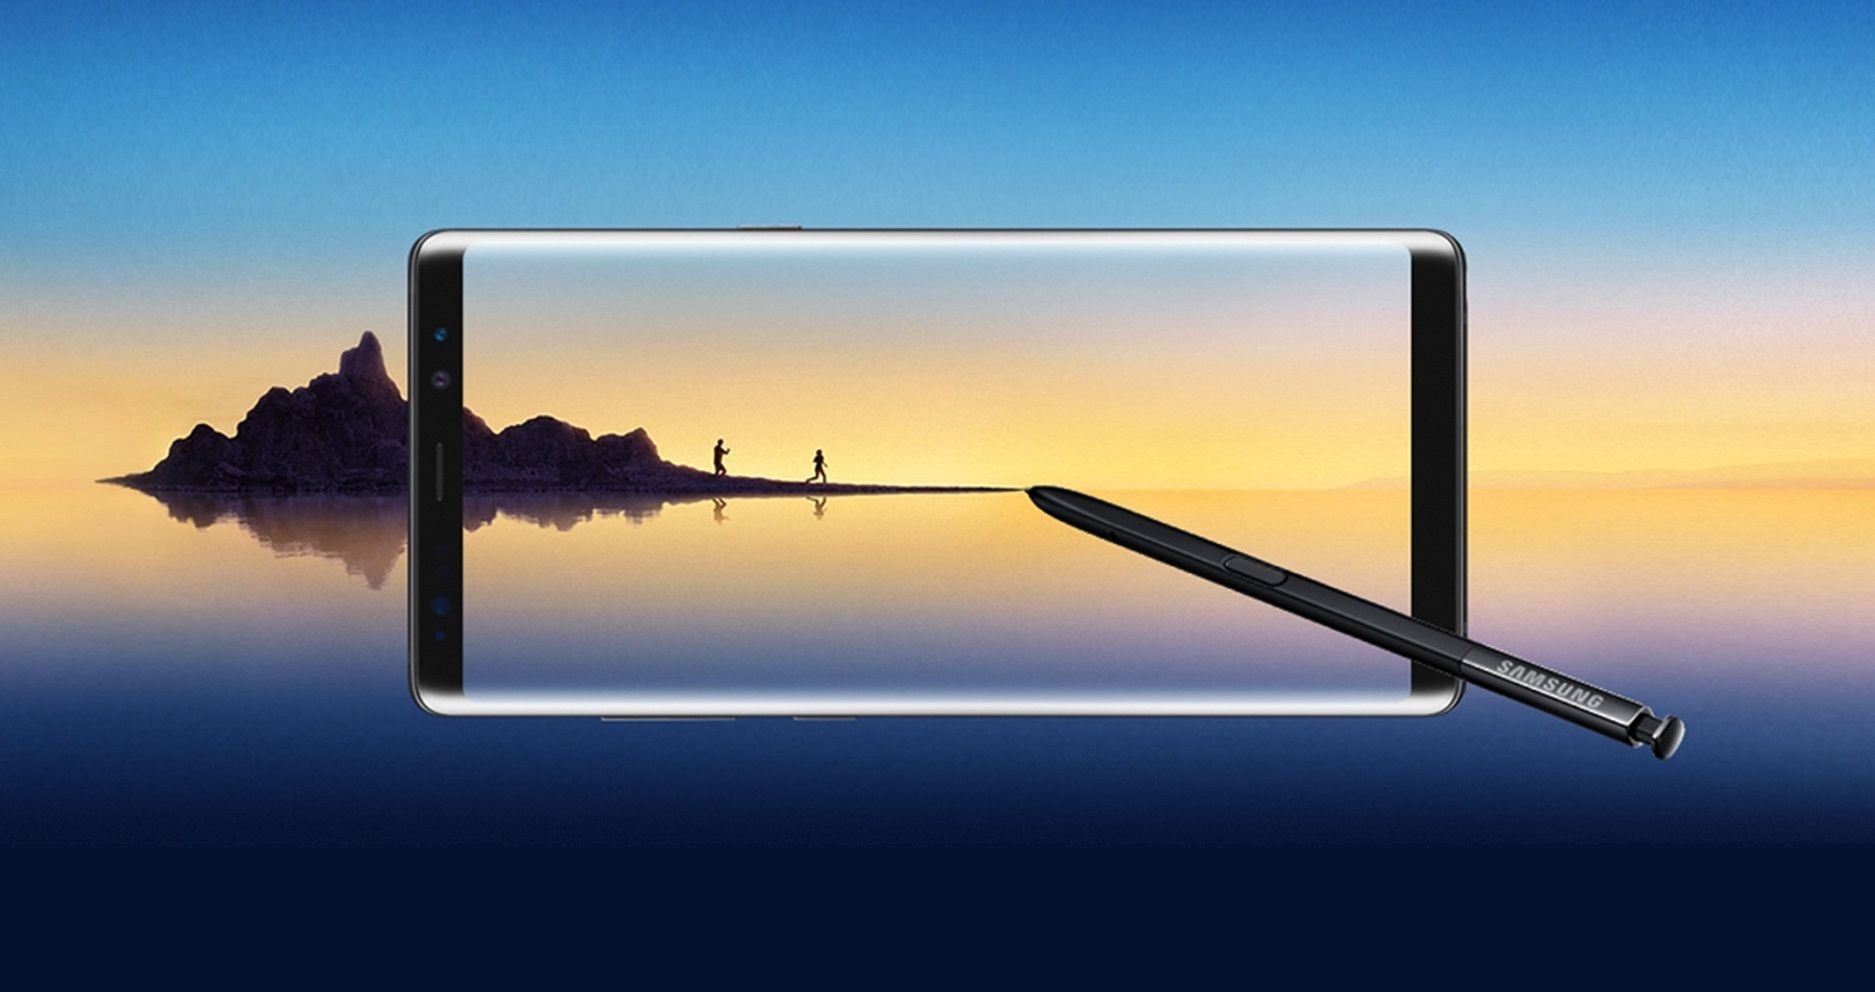 Samsung Galaxy Note 8 - Top 5 Features